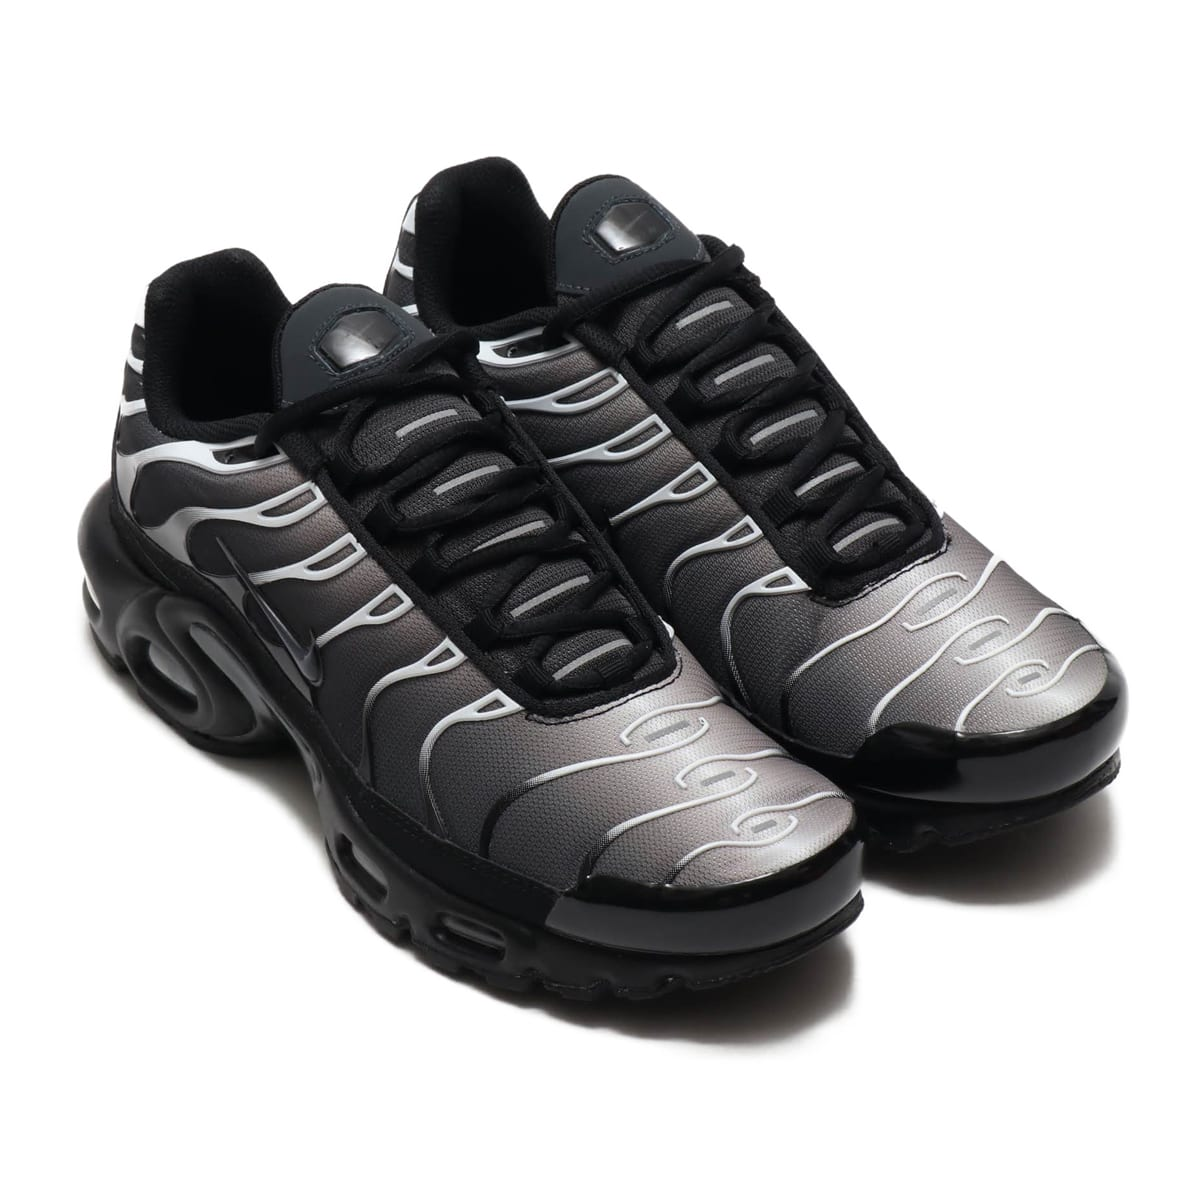 NIKE AIR MAX PLUS BLACK/ANTHRACITE-BLACK 19FA-I_photo_large